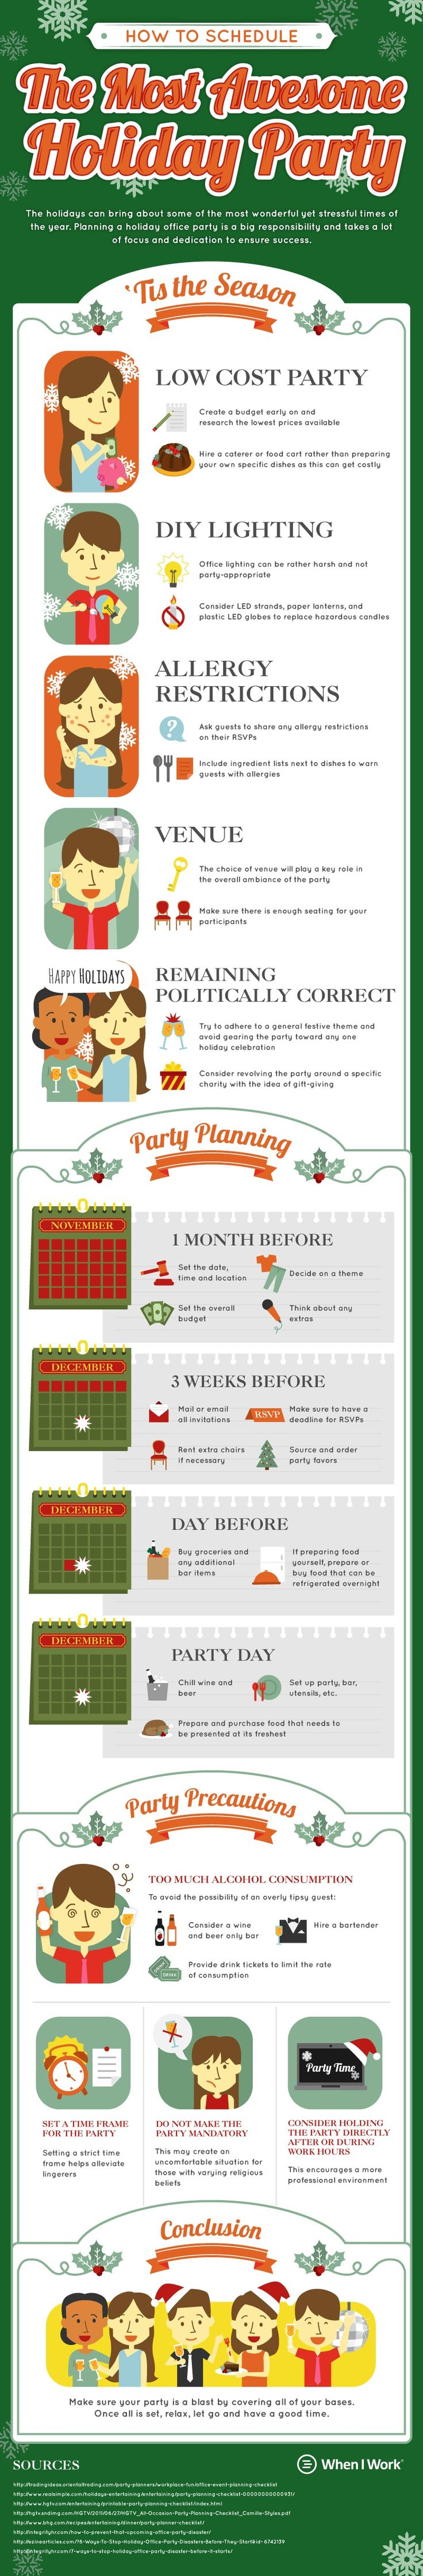 Christmas Party Ideas For Small Business Part - 25: How To Schedule An Awesome Holiday Party [Infographic]